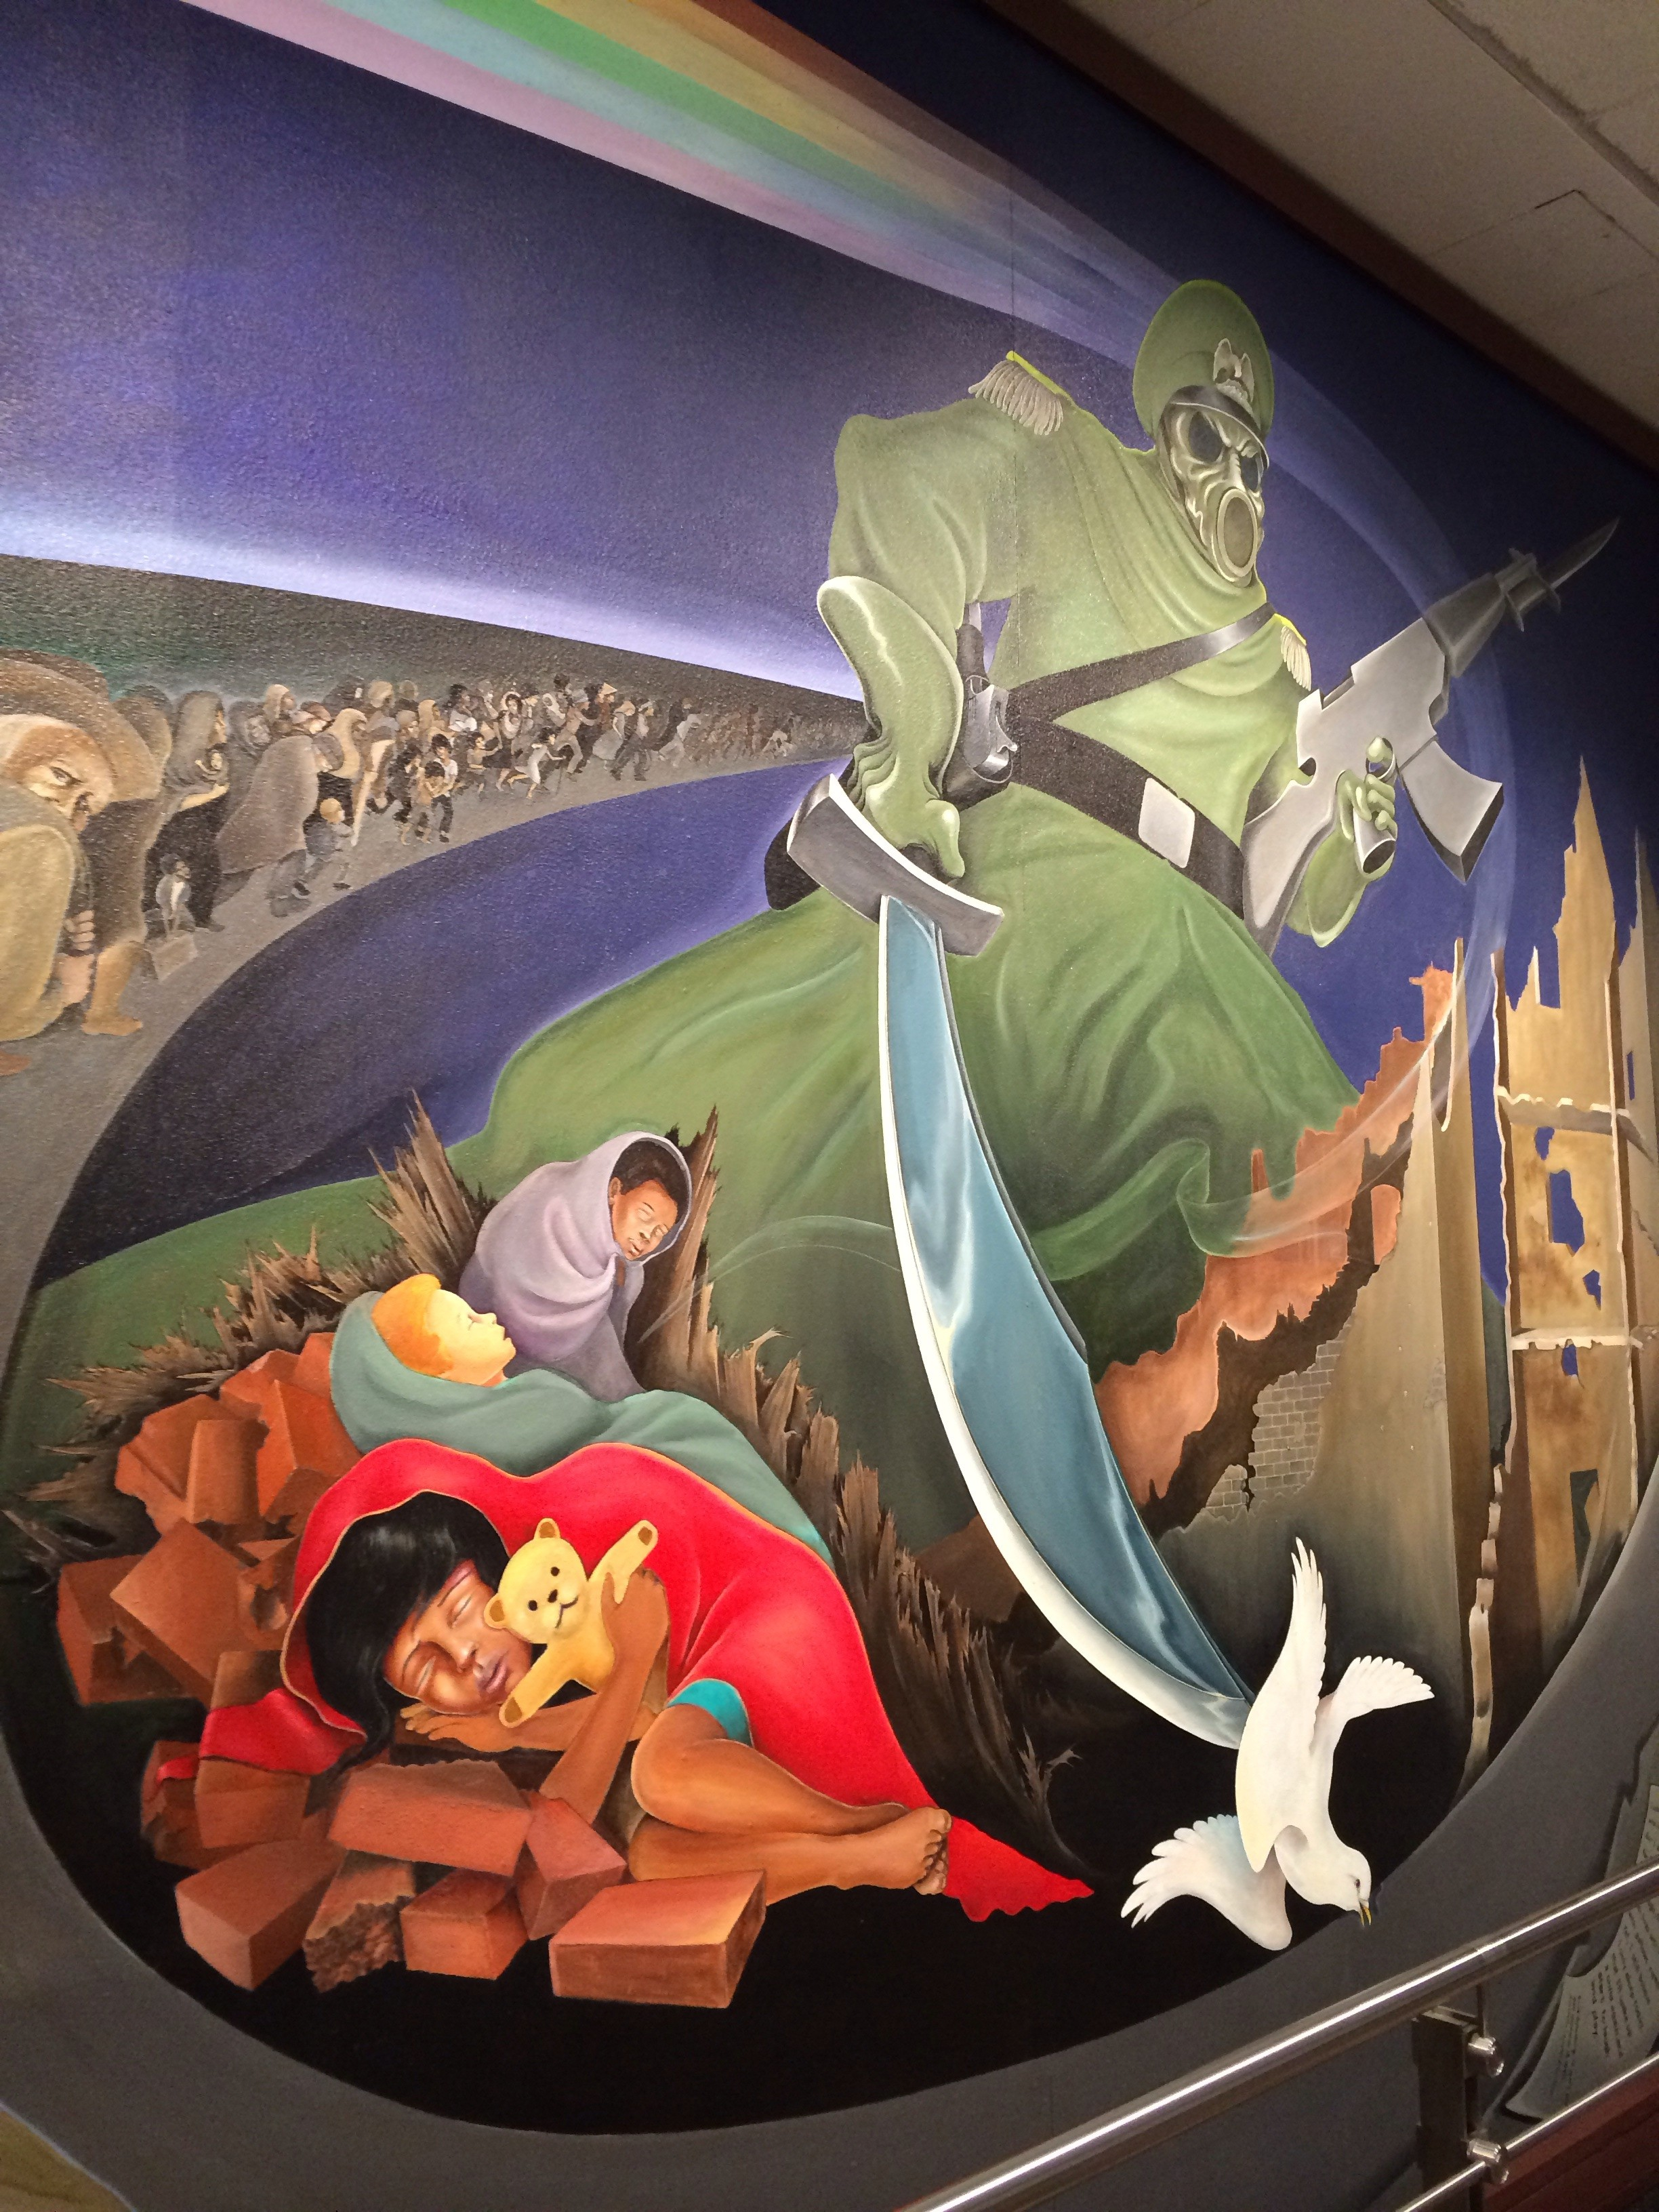 Eerie Murals At The Denver Airport Have Conspiracy Theorist Buzzing. Part 47